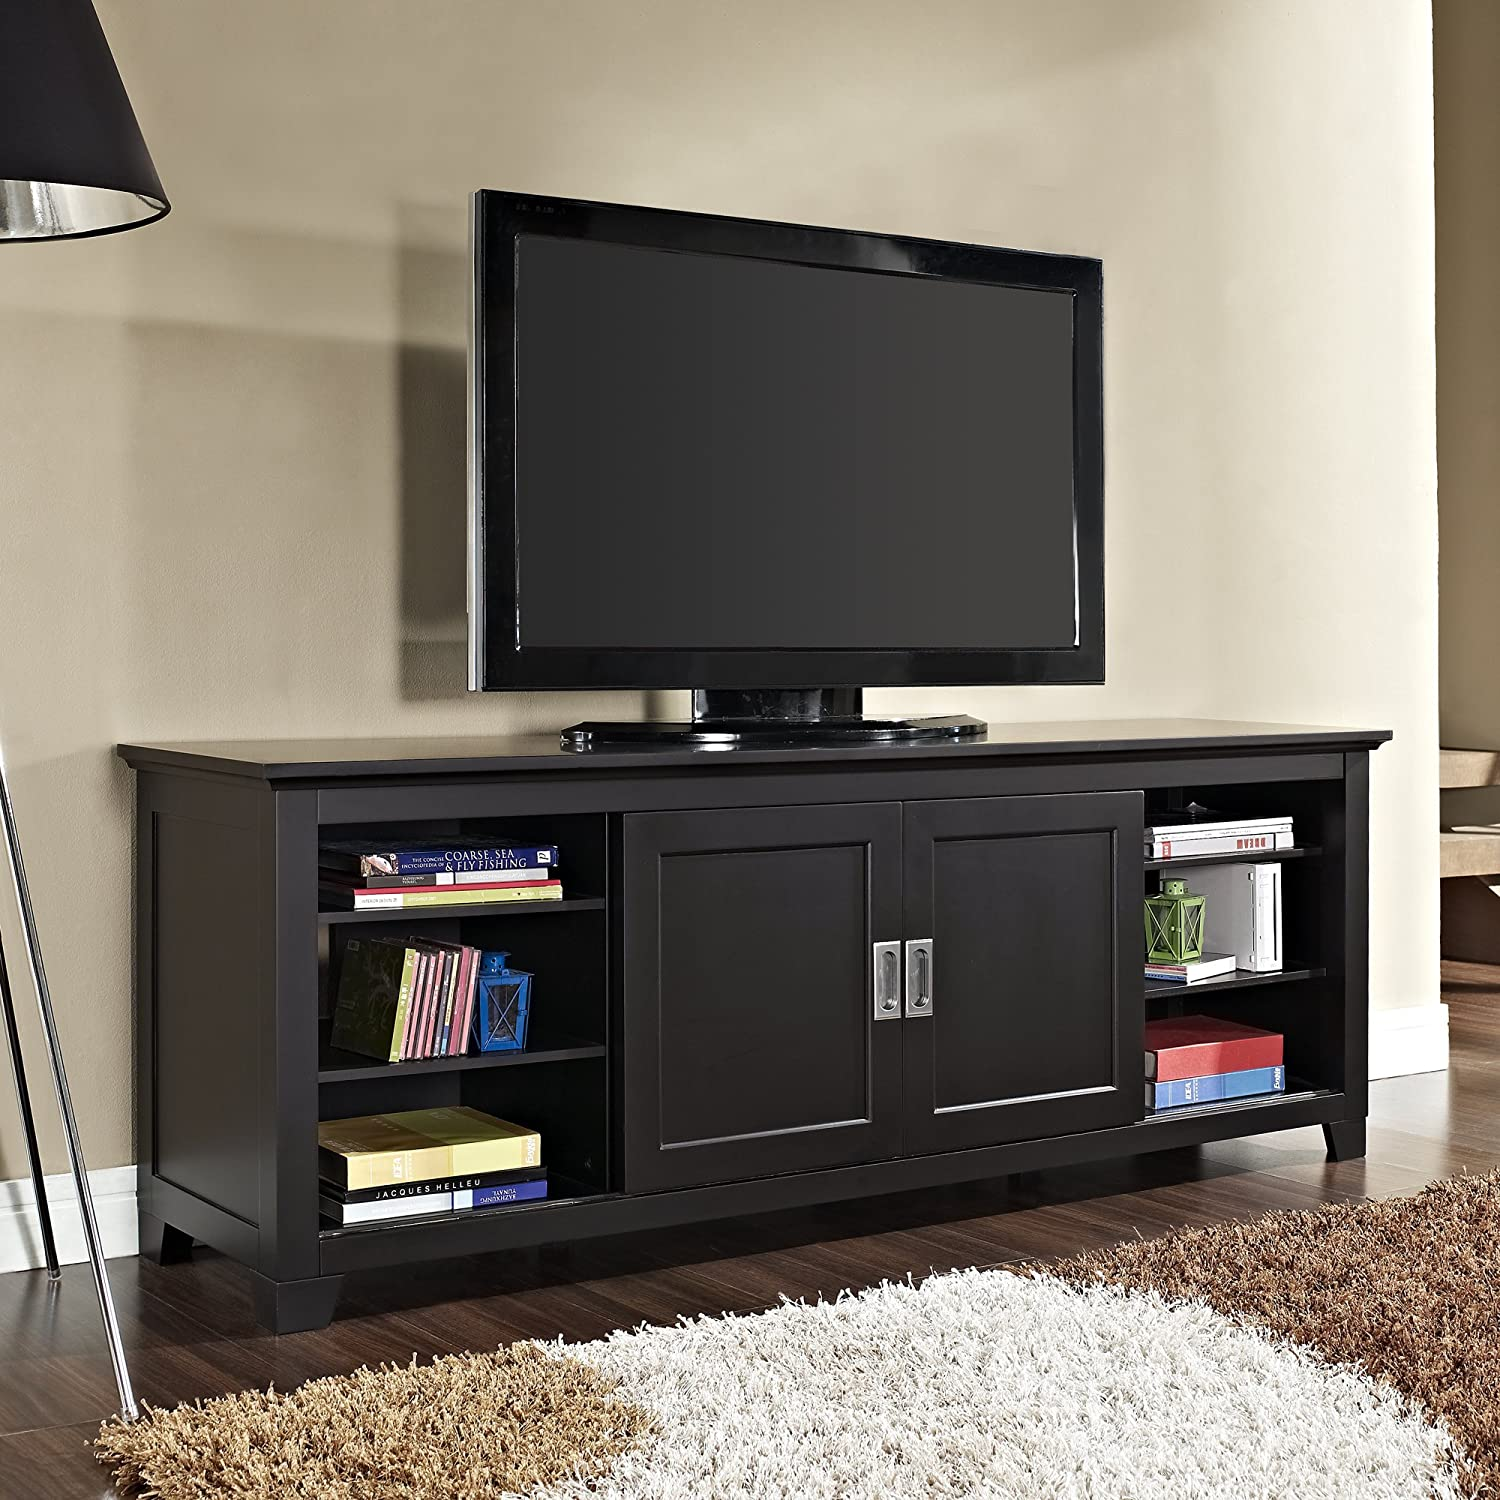 Amazon Com New 70 Inch Wood Tv Stand With Sliding Doors In A